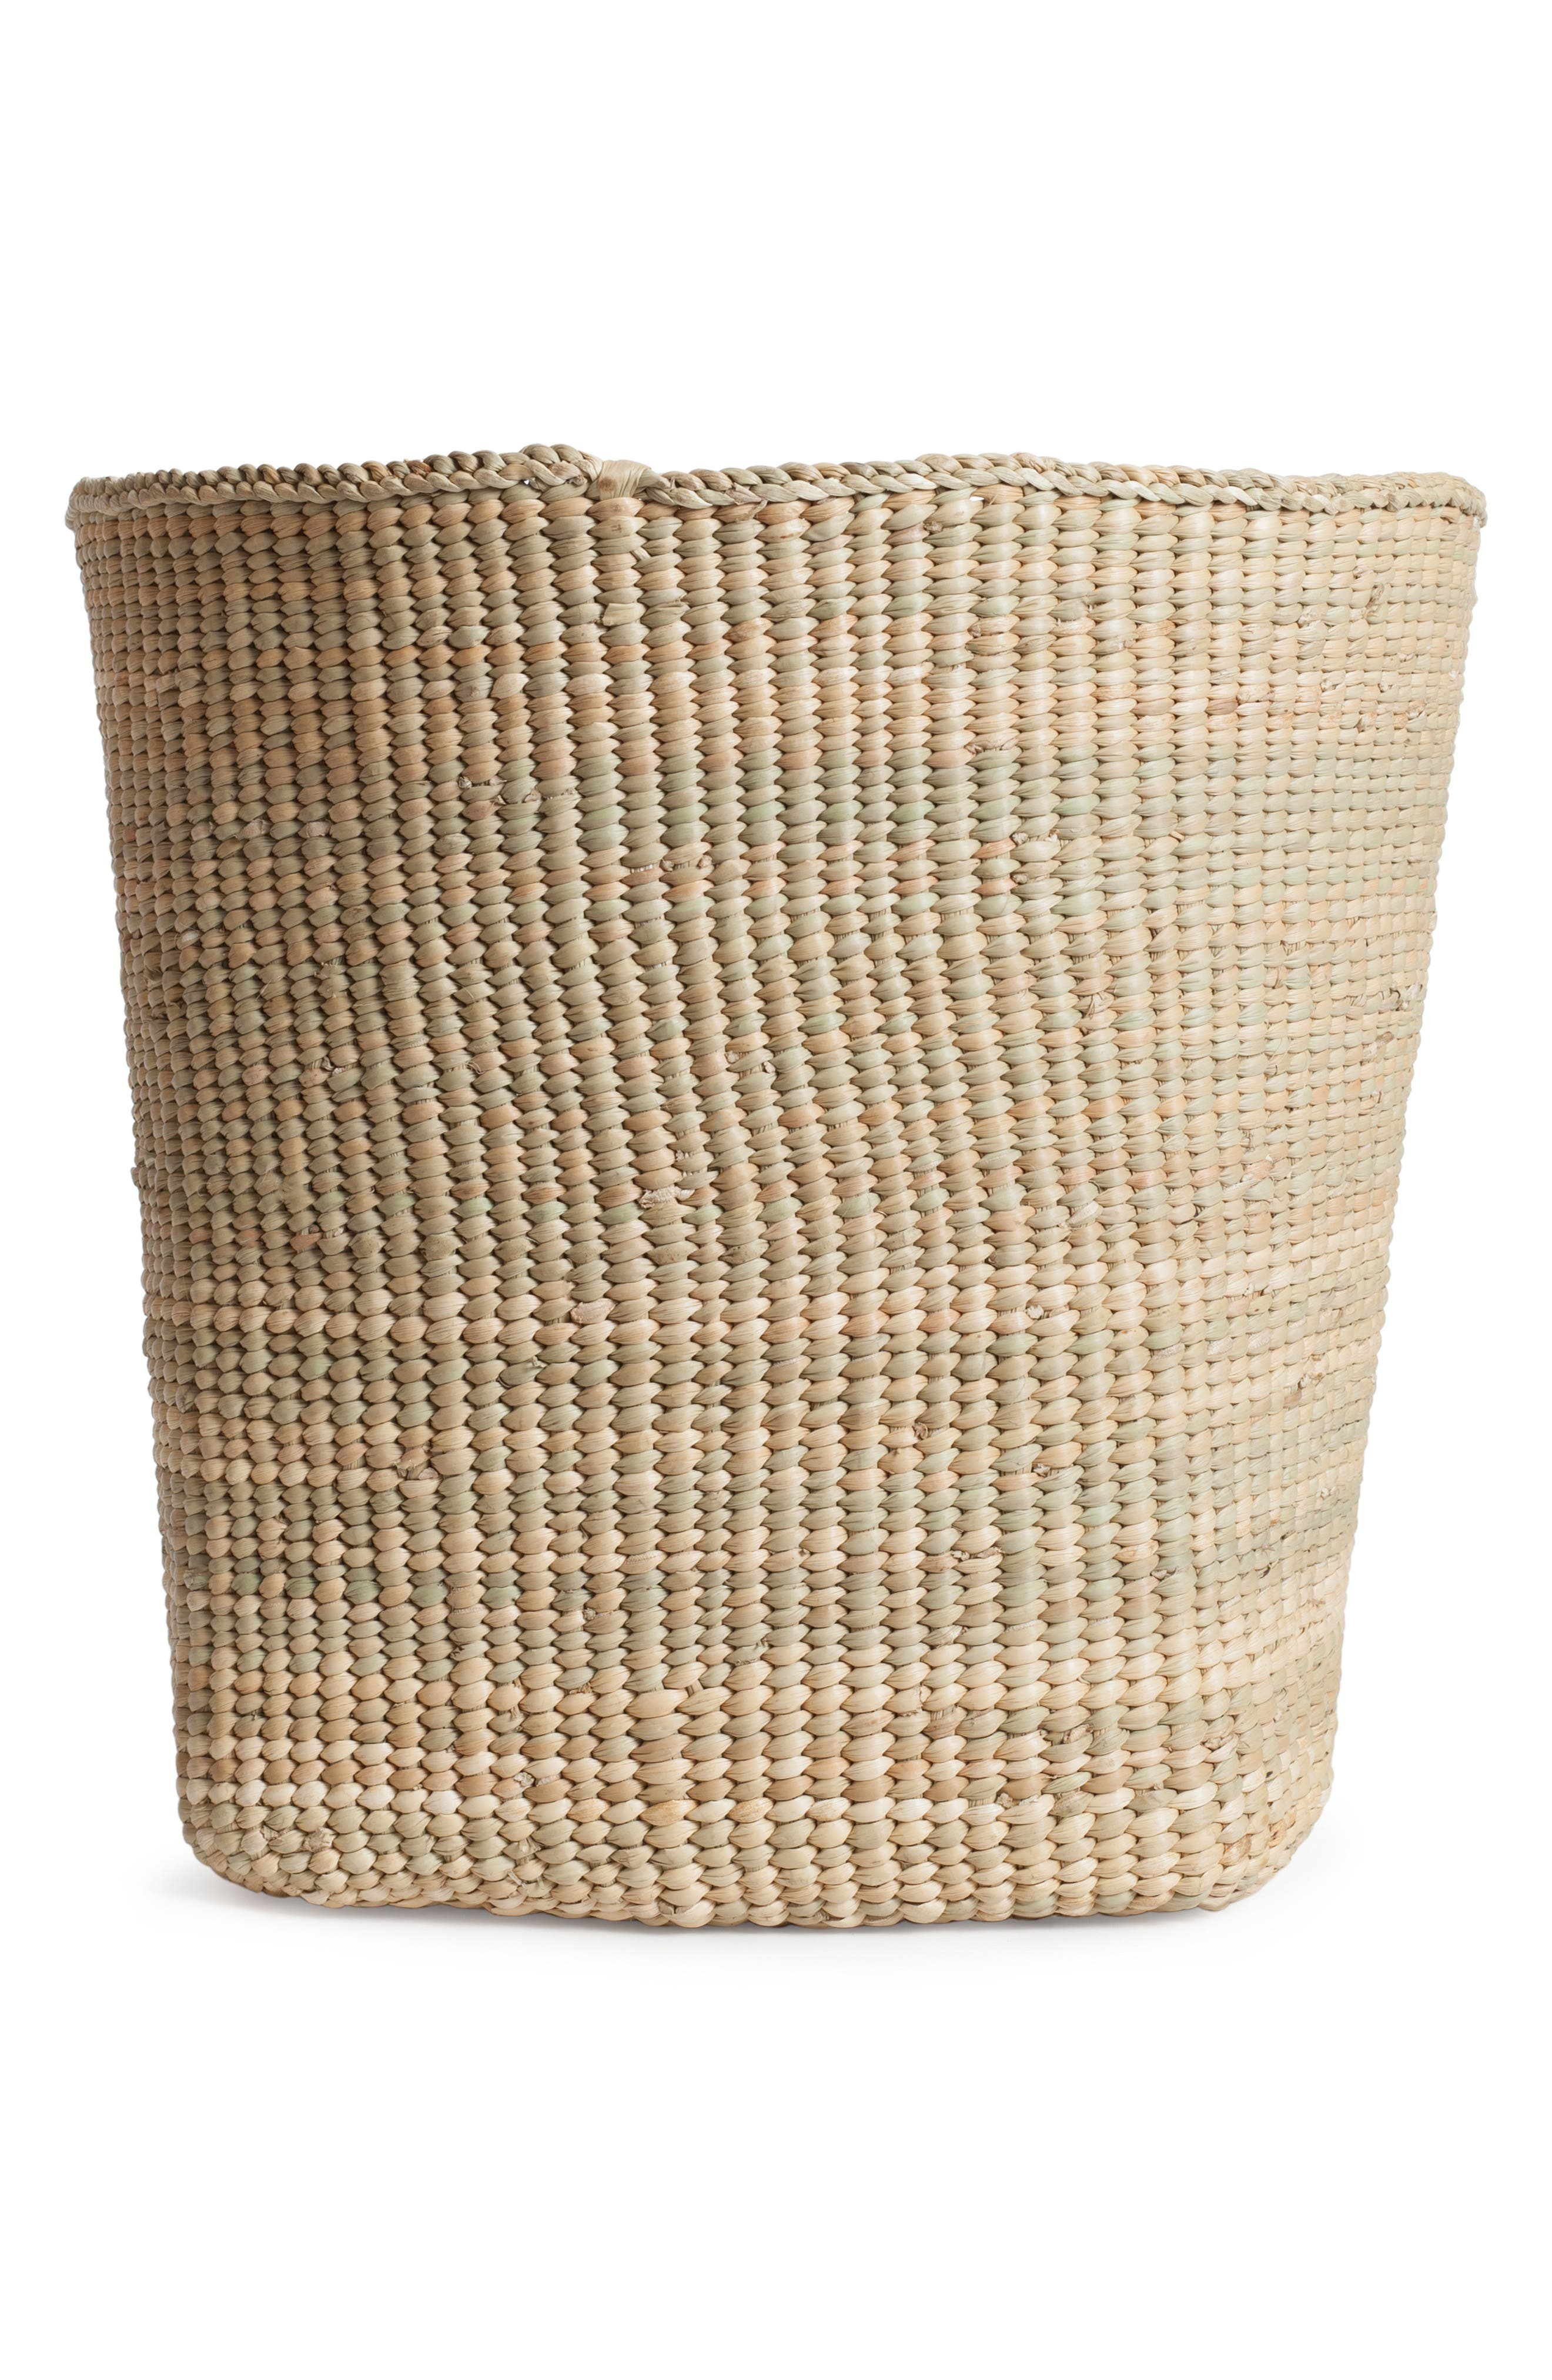 Useful as a garbage bin or small plant cachepot, this short basket is handwoven by Tanzanian artisans in a traditional shape using local dried grass. Style Name: Hawkins New York Short Woven Grass Basket. Style Number: 6100256. Available in stores.